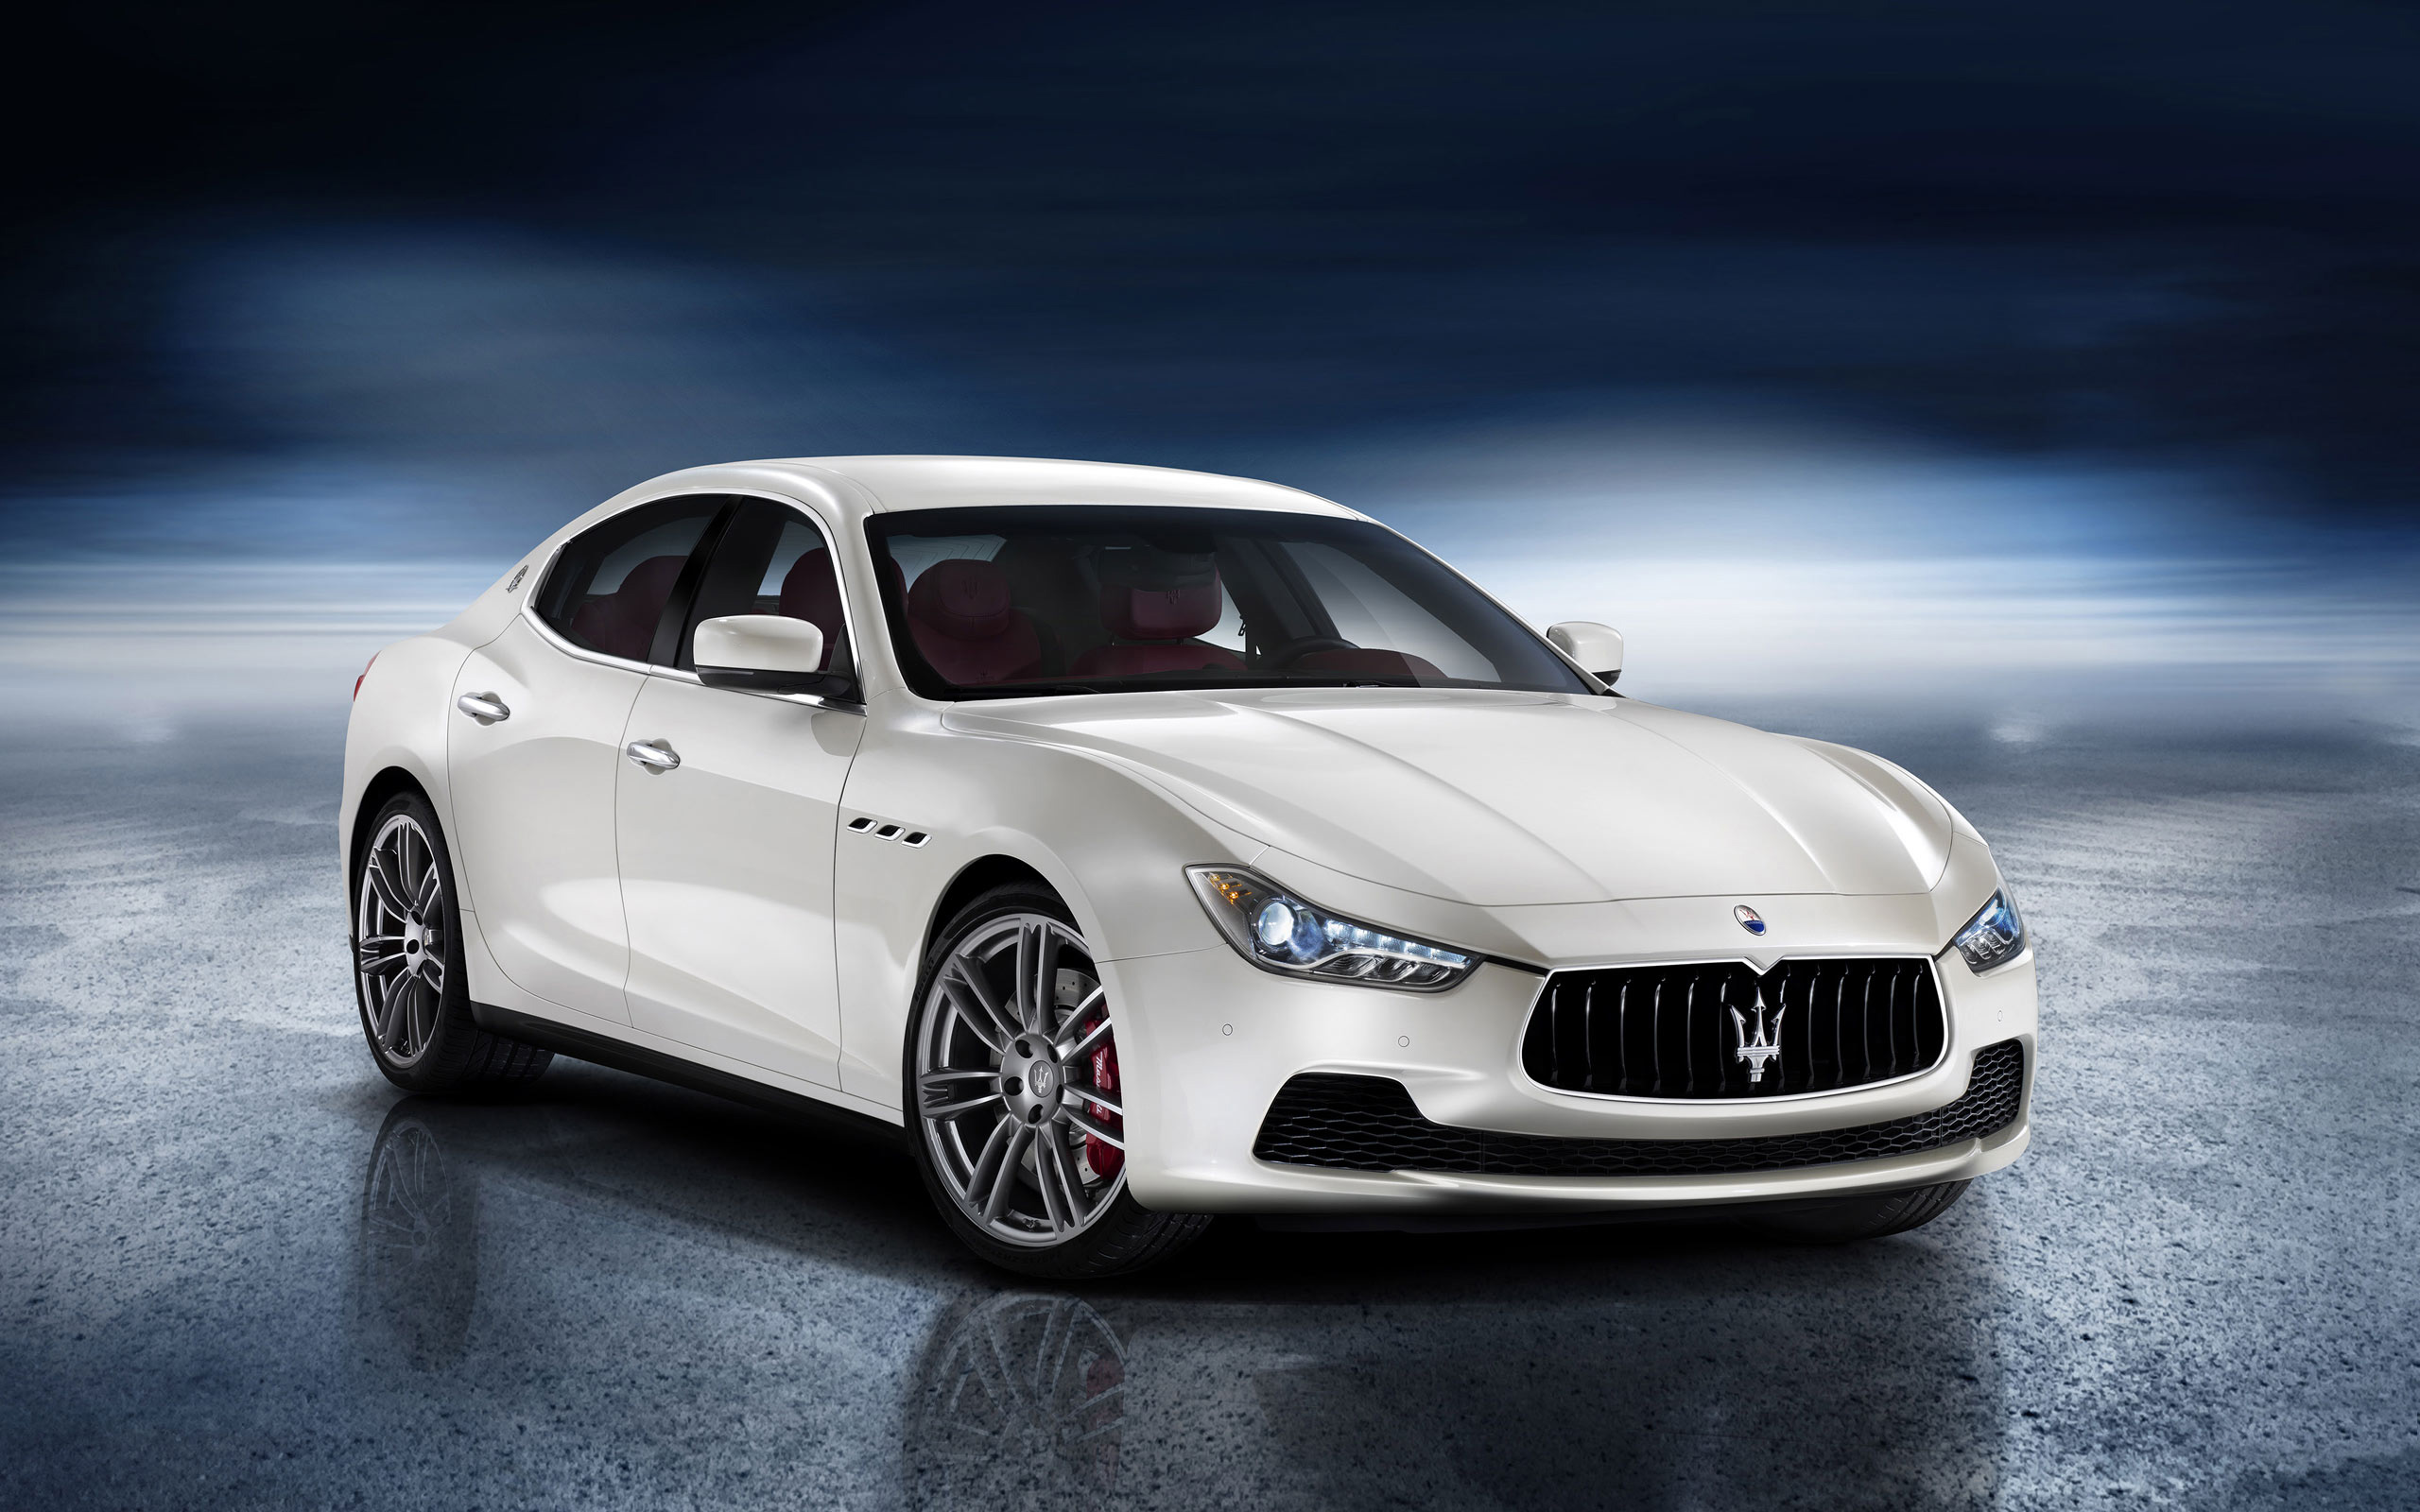 2014 Maserati Ghibli Wallpaper Hd Car Wallpapers Id 3369